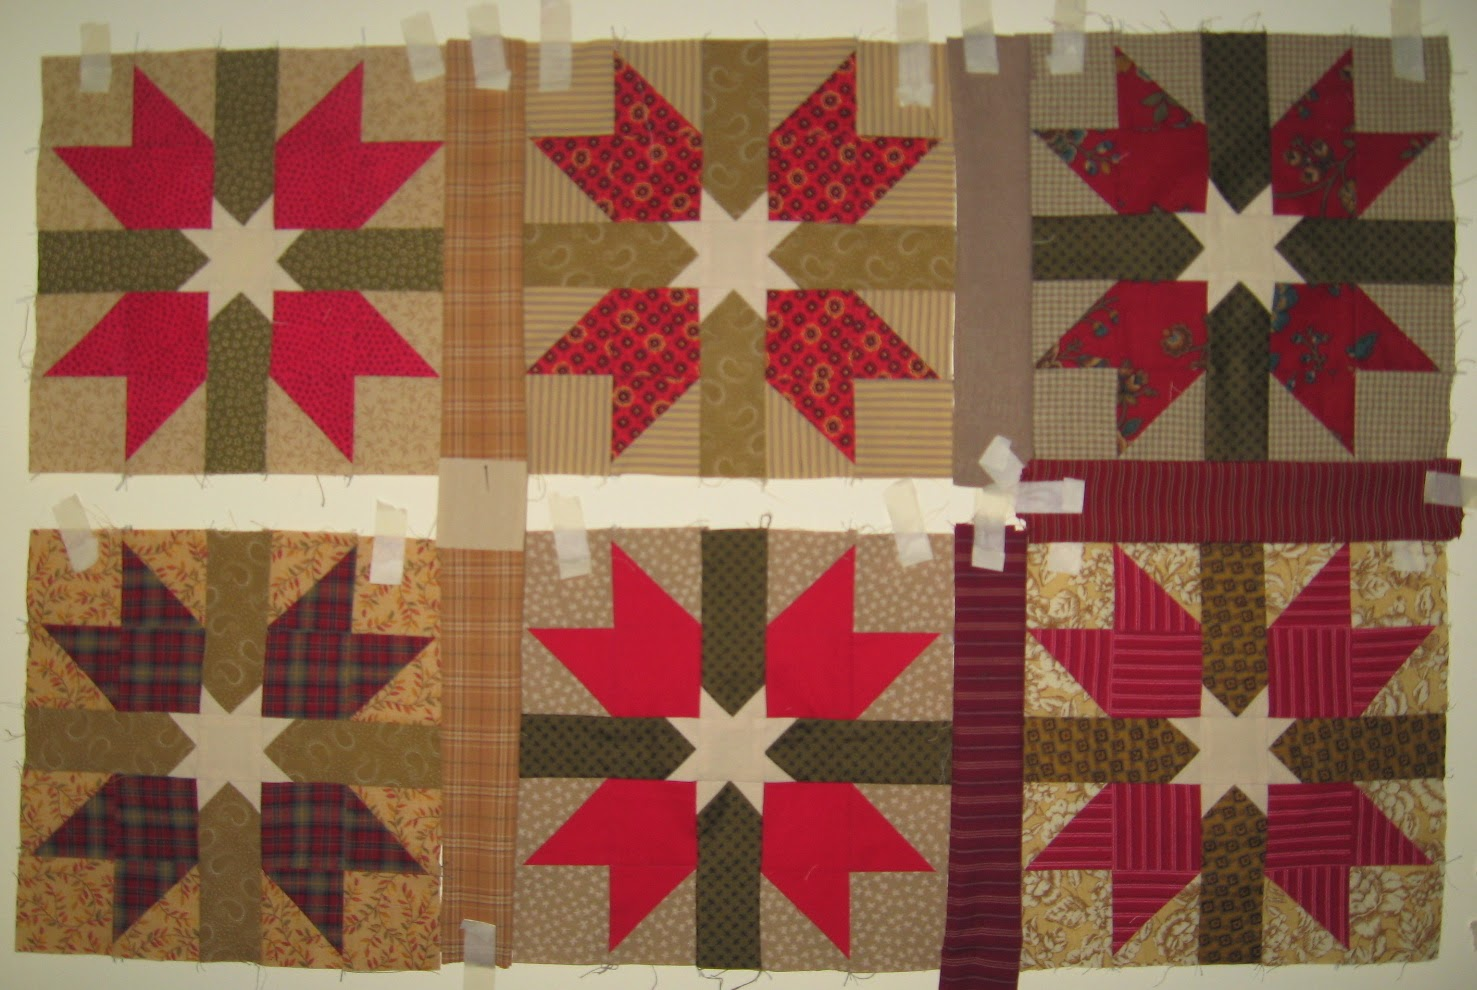 Red Wings with Stars blocks for scrap quilt